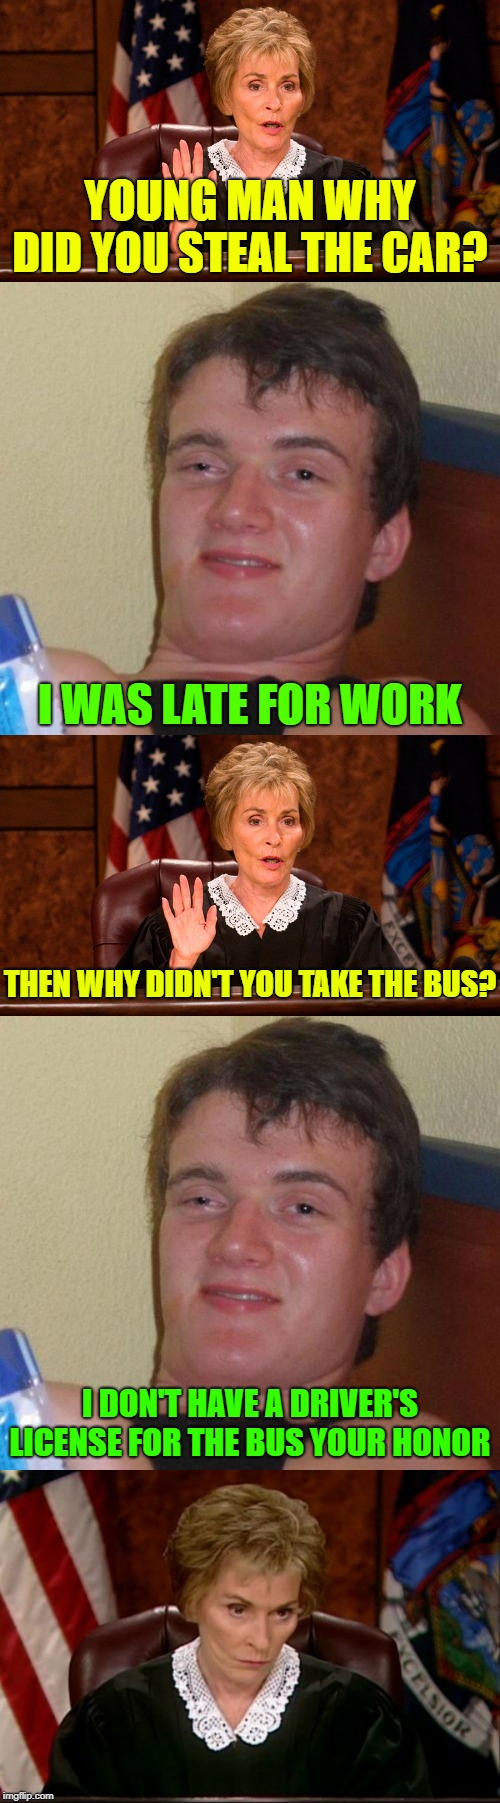 10 Guy in court | YOUNG MAN WHY DID YOU STEAL THE CAR? I WAS LATE FOR WORK THEN WHY DIDN'T YOU TAKE THE BUS? I DON'T HAVE A DRIVER'S LICENSE FOR THE BUS YOUR  | image tagged in memes,10 guy,judge judy,in court | made w/ Imgflip meme maker